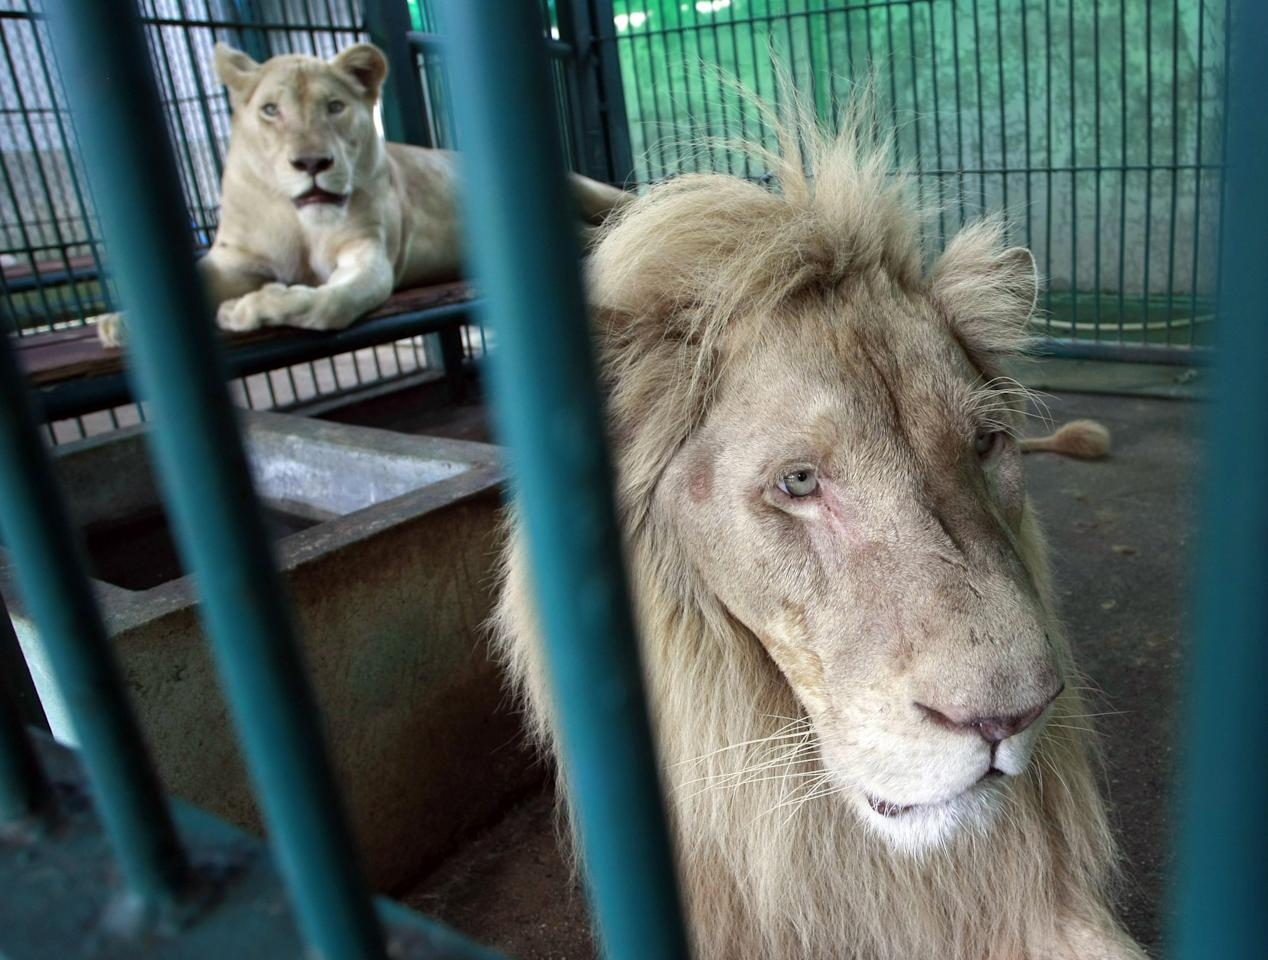 Lions rest inside an enclosure after a raid at a zoo-like house on the outskirts of Bangkok, Thailand Monday, June 10, 2013. Thai police and forestry officials searched and seized a number of imported and endangered animals including 14 lions from Africa and arrested the house's owner. (AP Photo/Apichart Weerawong)